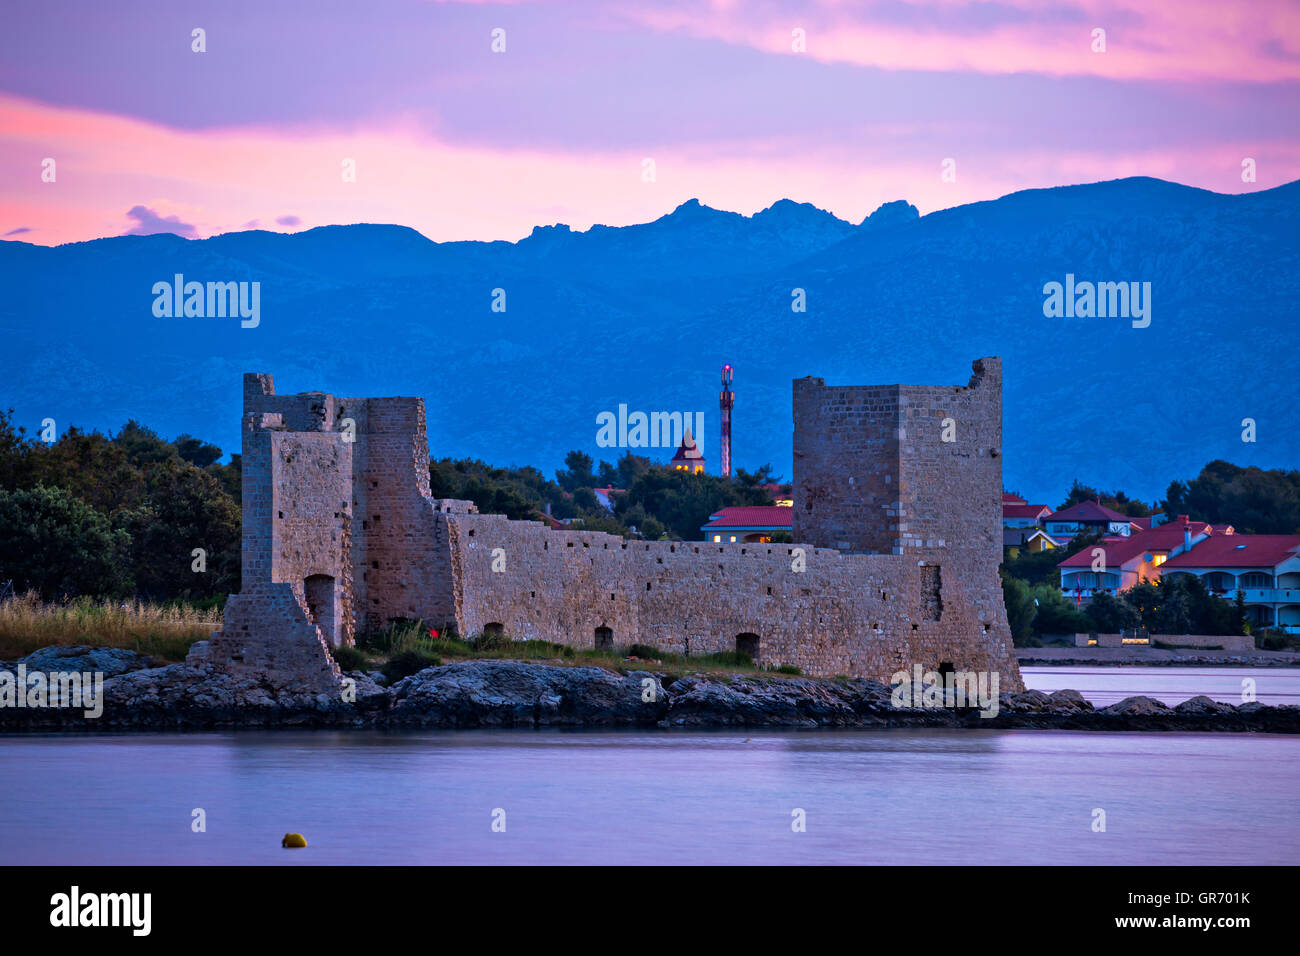 Island of Vir dawn view, fortress and Velebit mountain, Dalmatia, Croatia - Stock Image